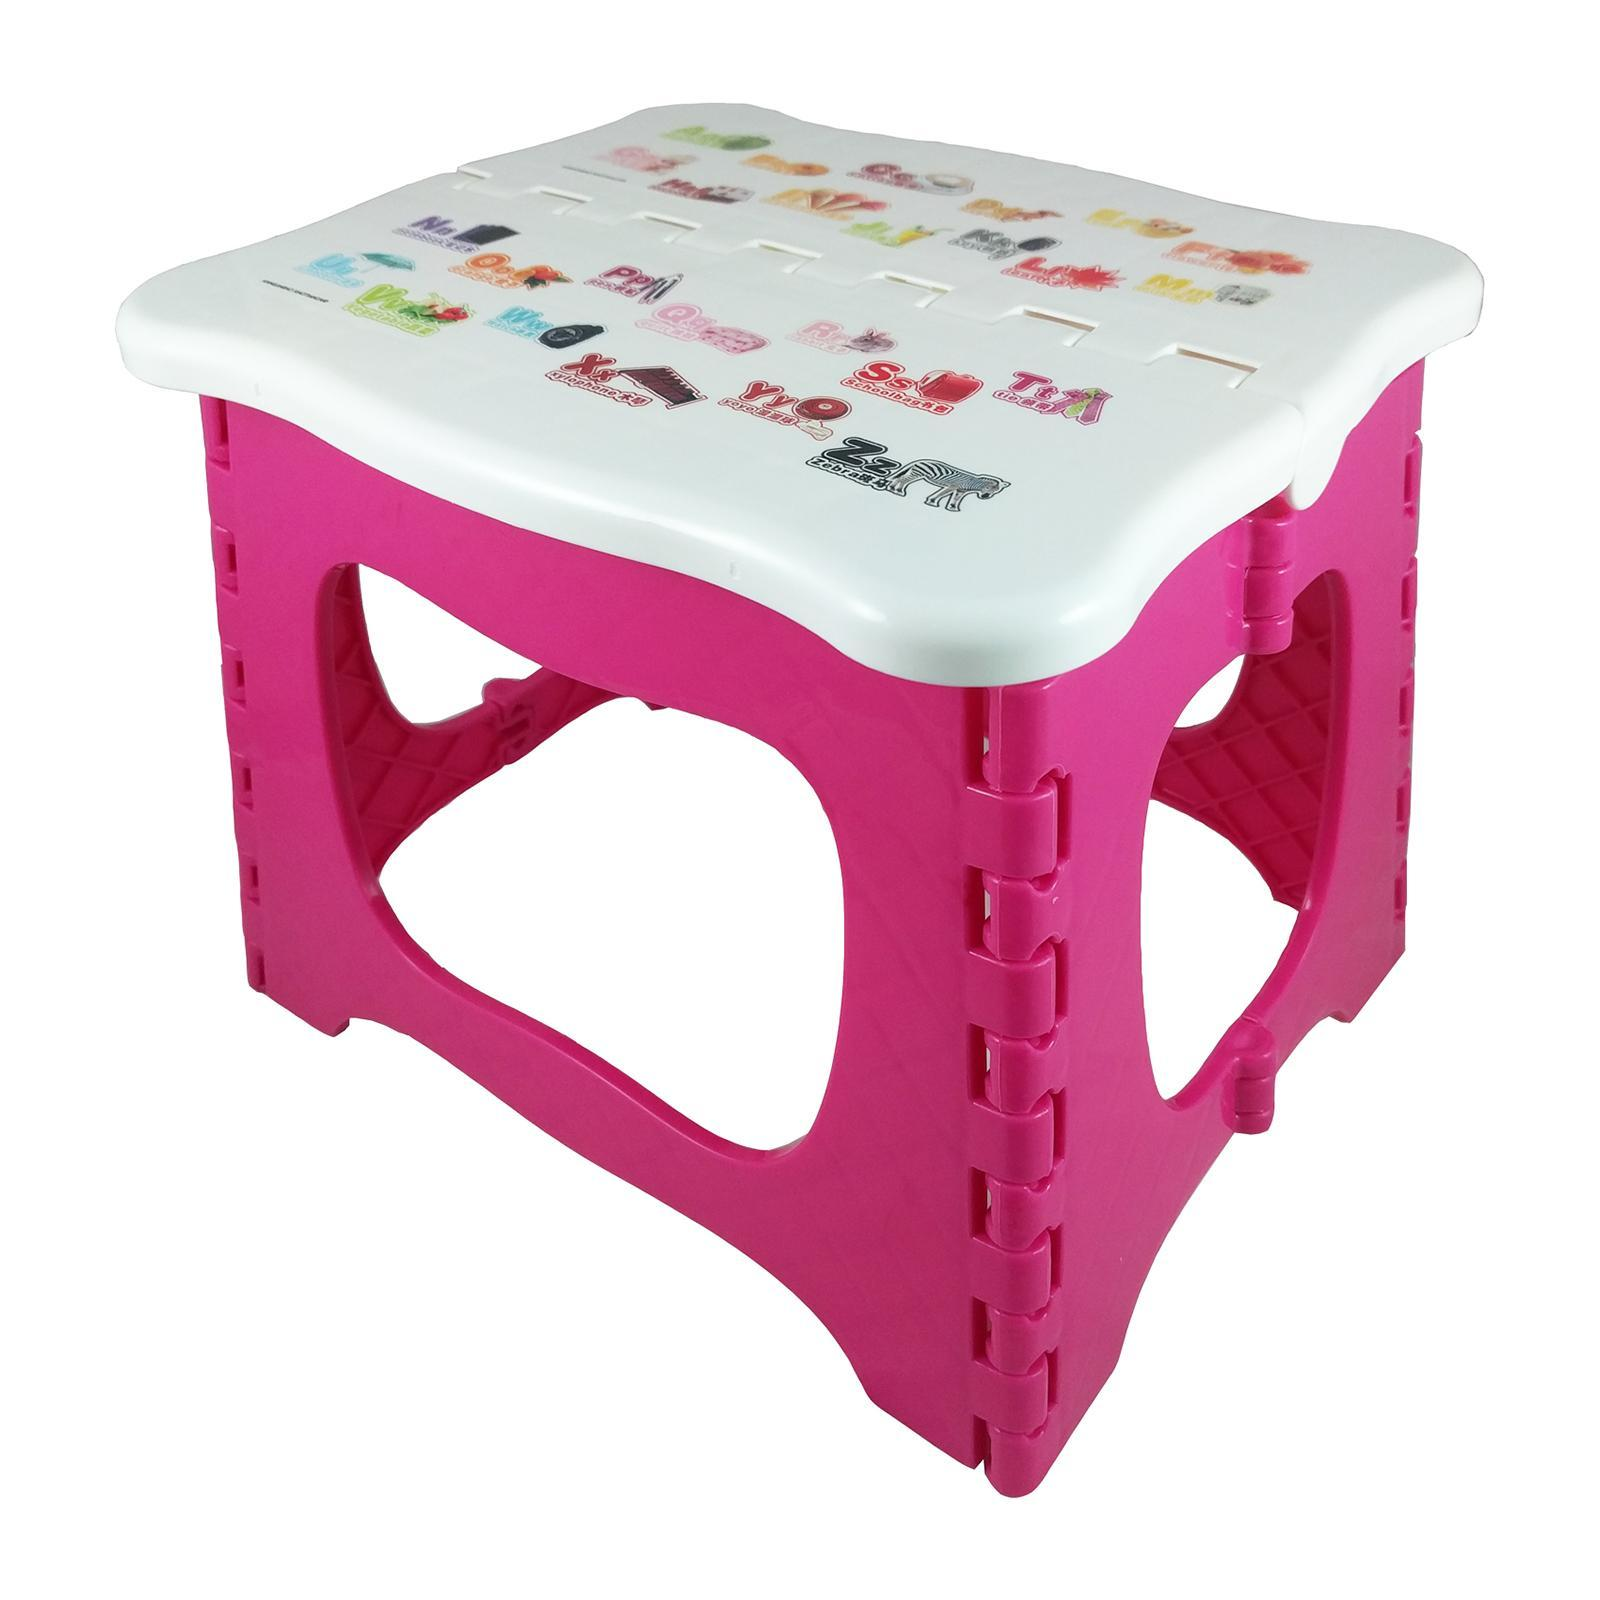 KangjiaBao Little Genius Plastic Foldable Stool 23 Cm (Pink)